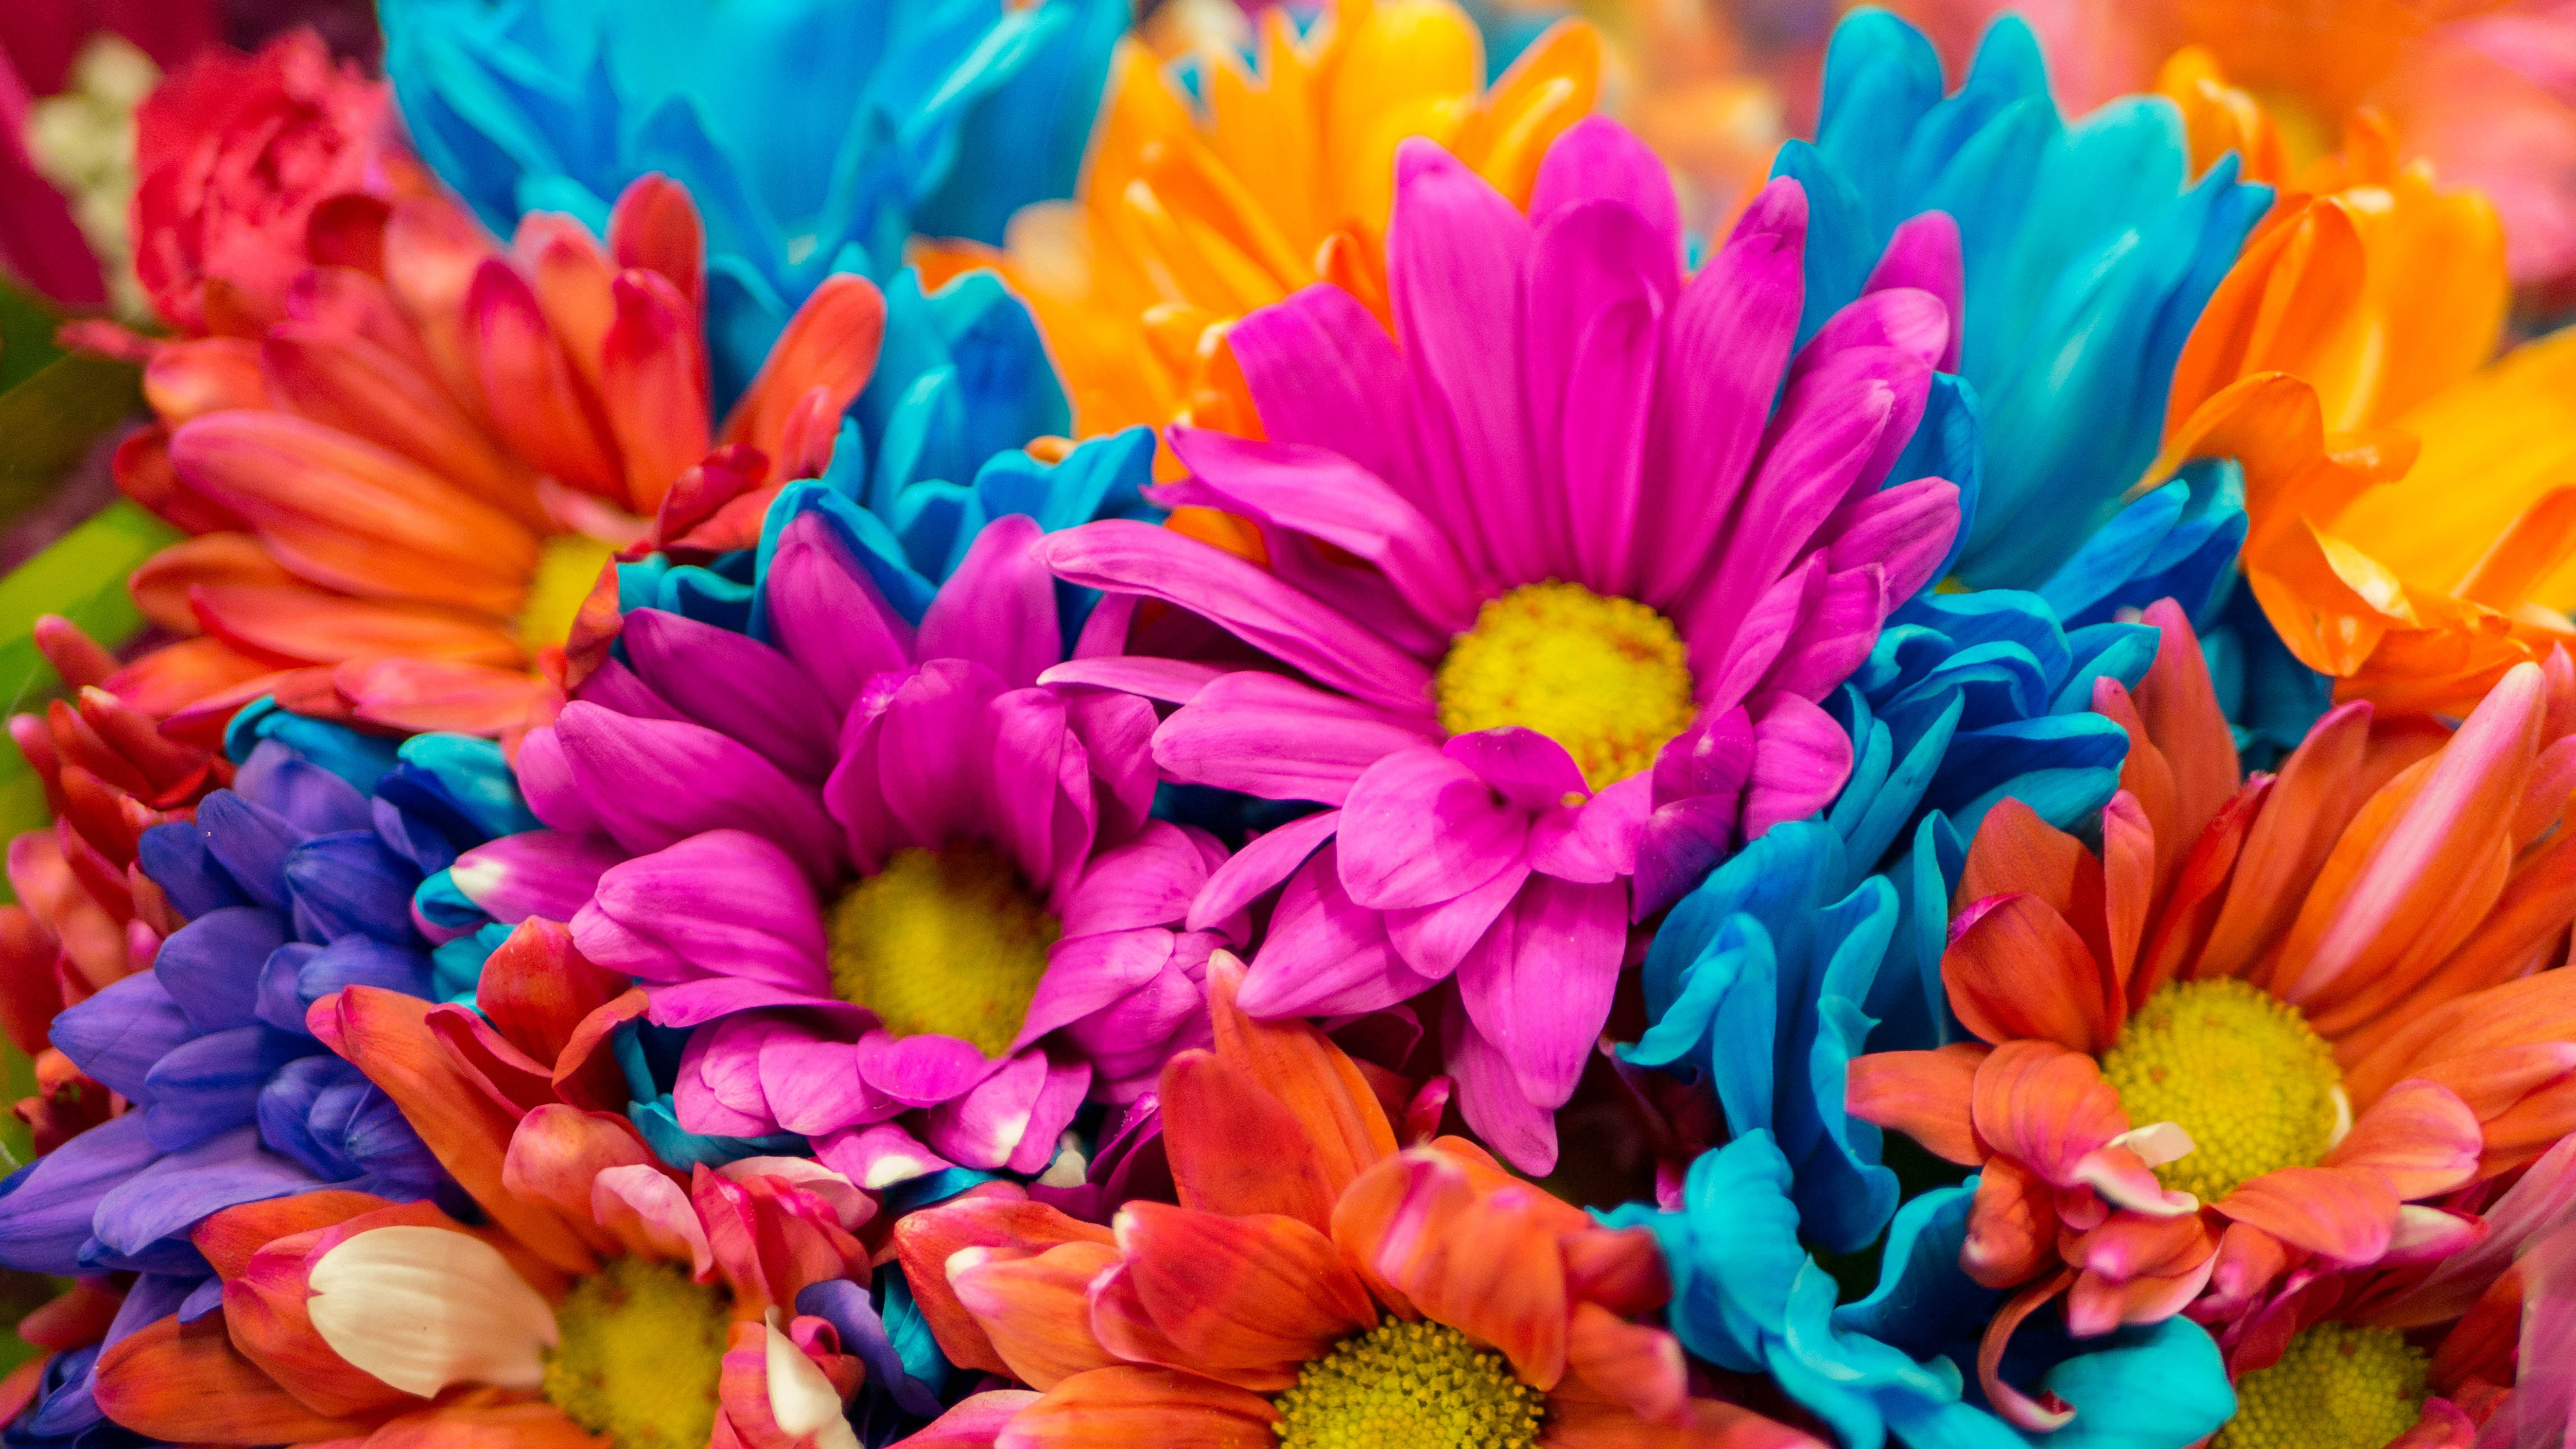 Cute Pink Wallpapers Download Colorful Flowers 4k Wallpapers Hd Wallpapers Id 28638